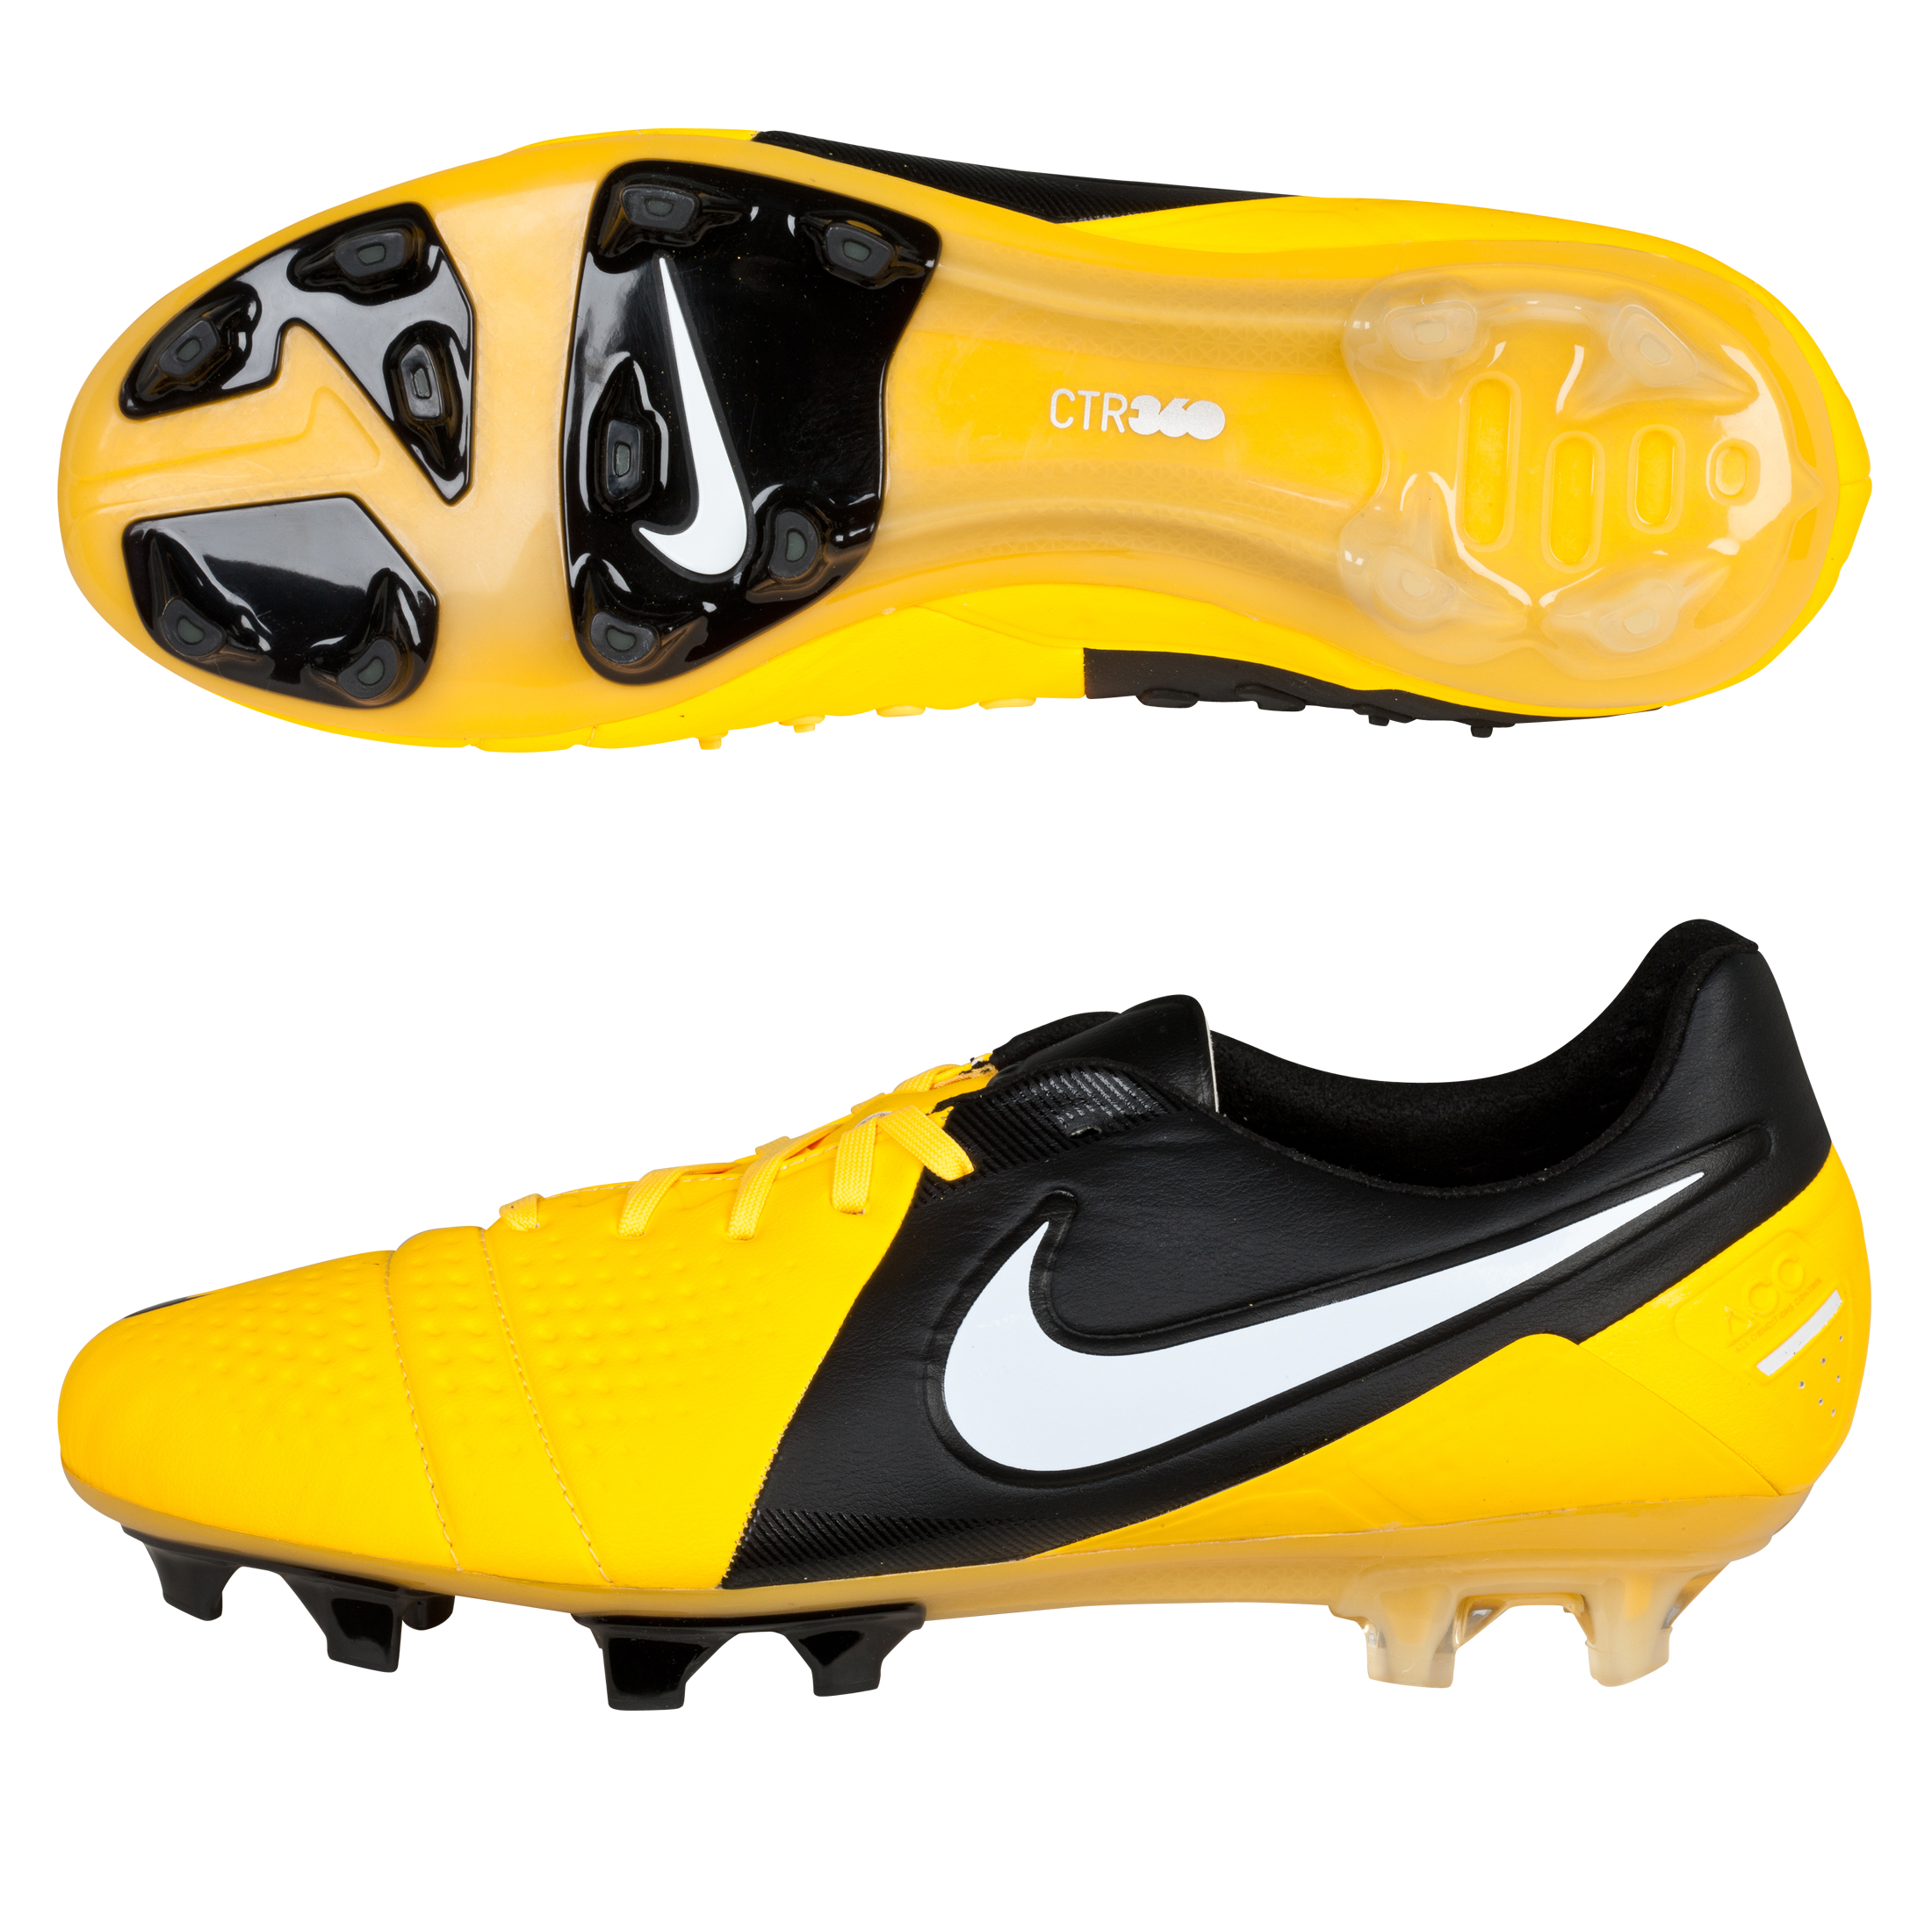 Nike CTR360 Maestri III Firm Ground Football Boots - Citrus/White/Black